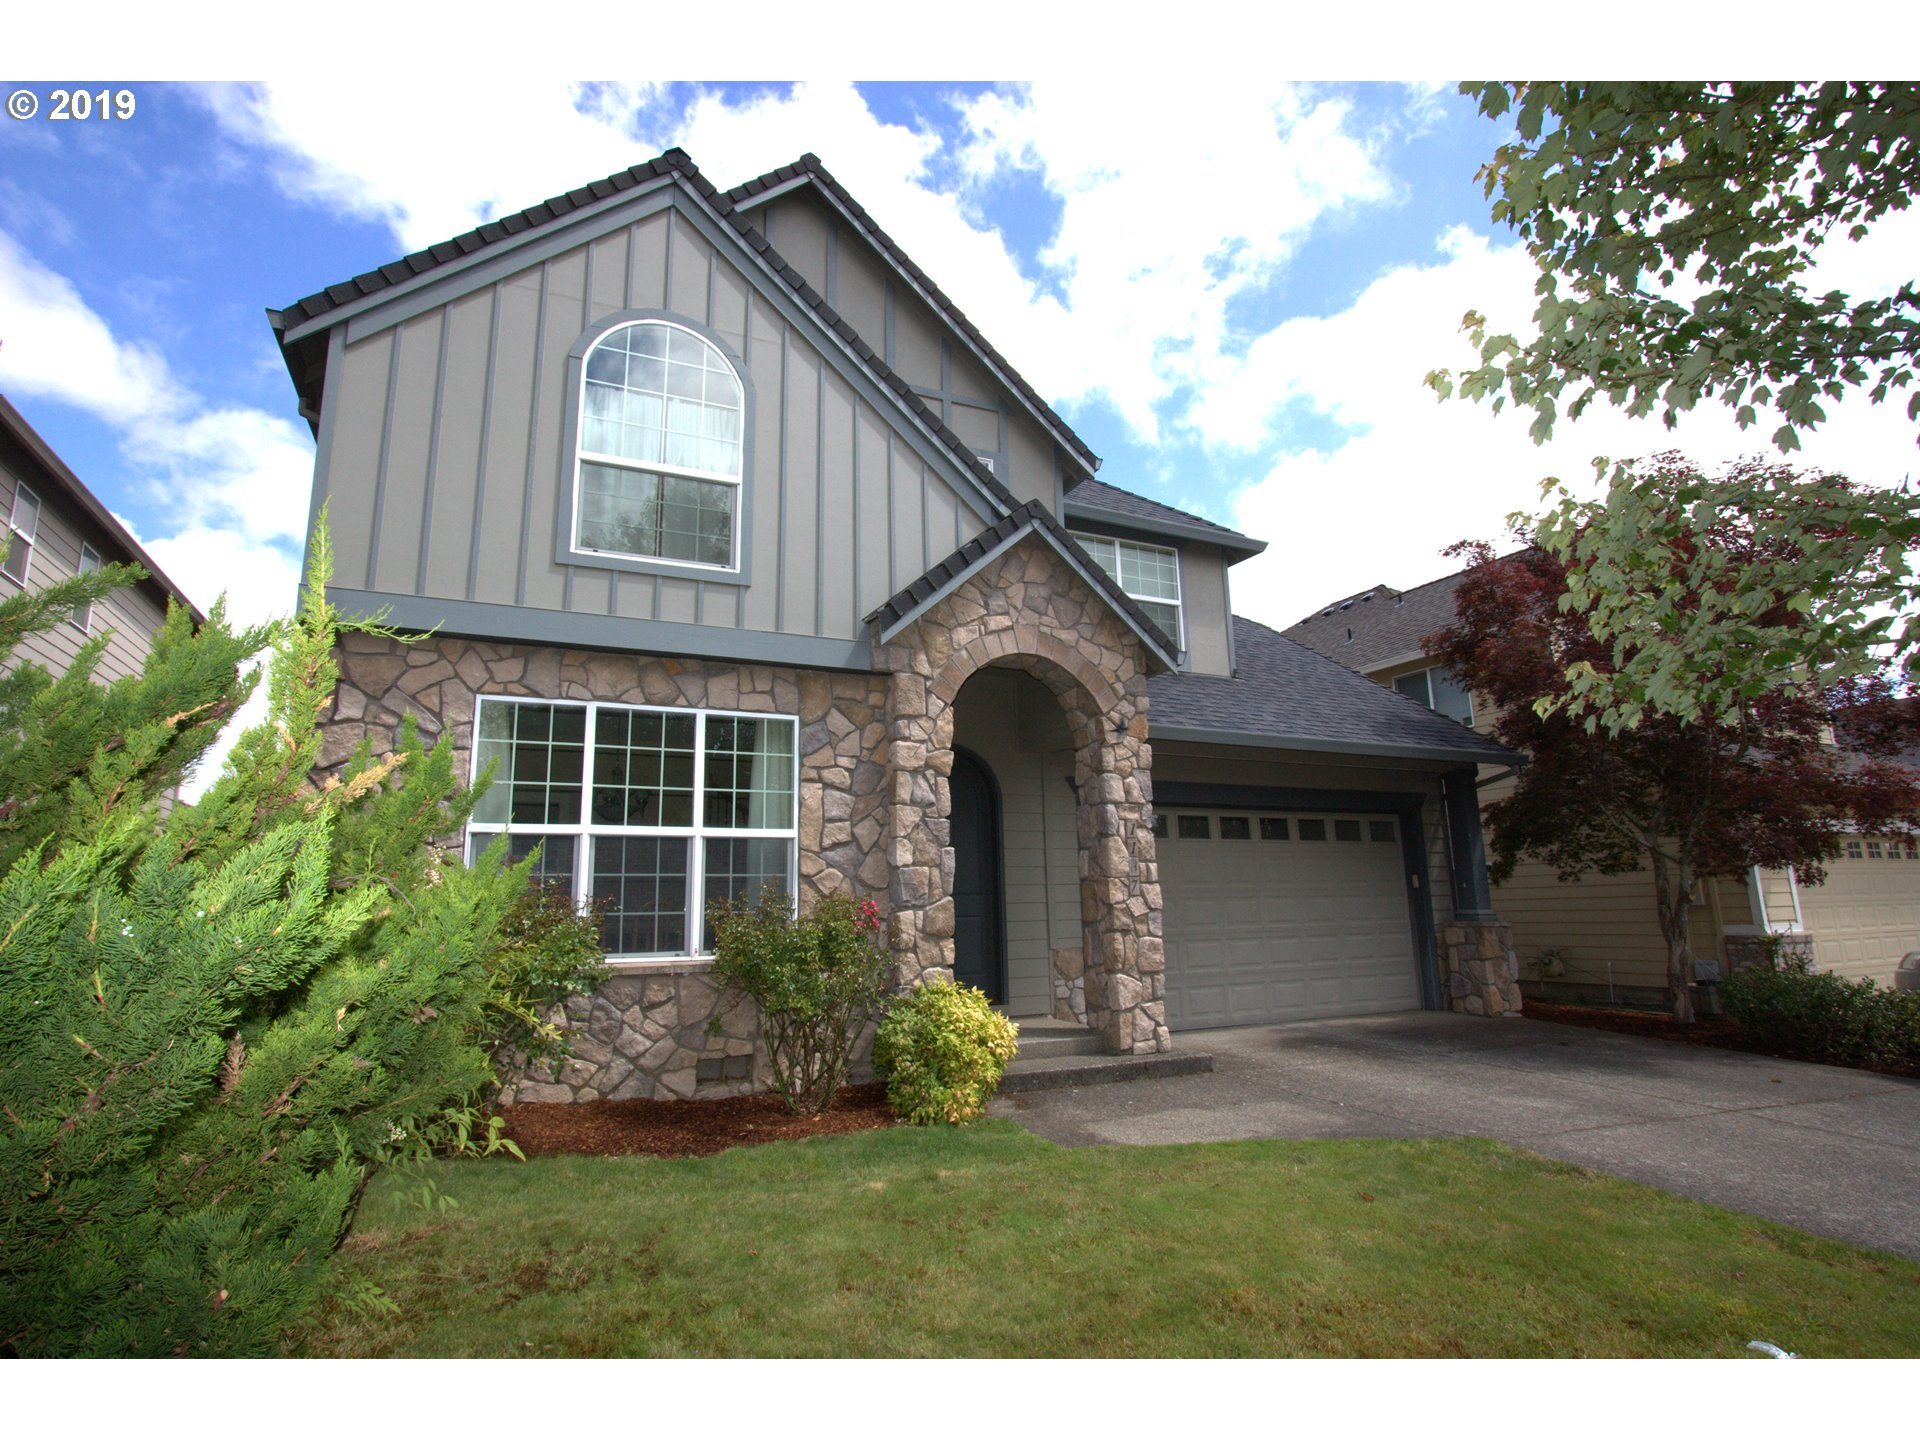 1137 34TH PL, Forest Grove OR 97116